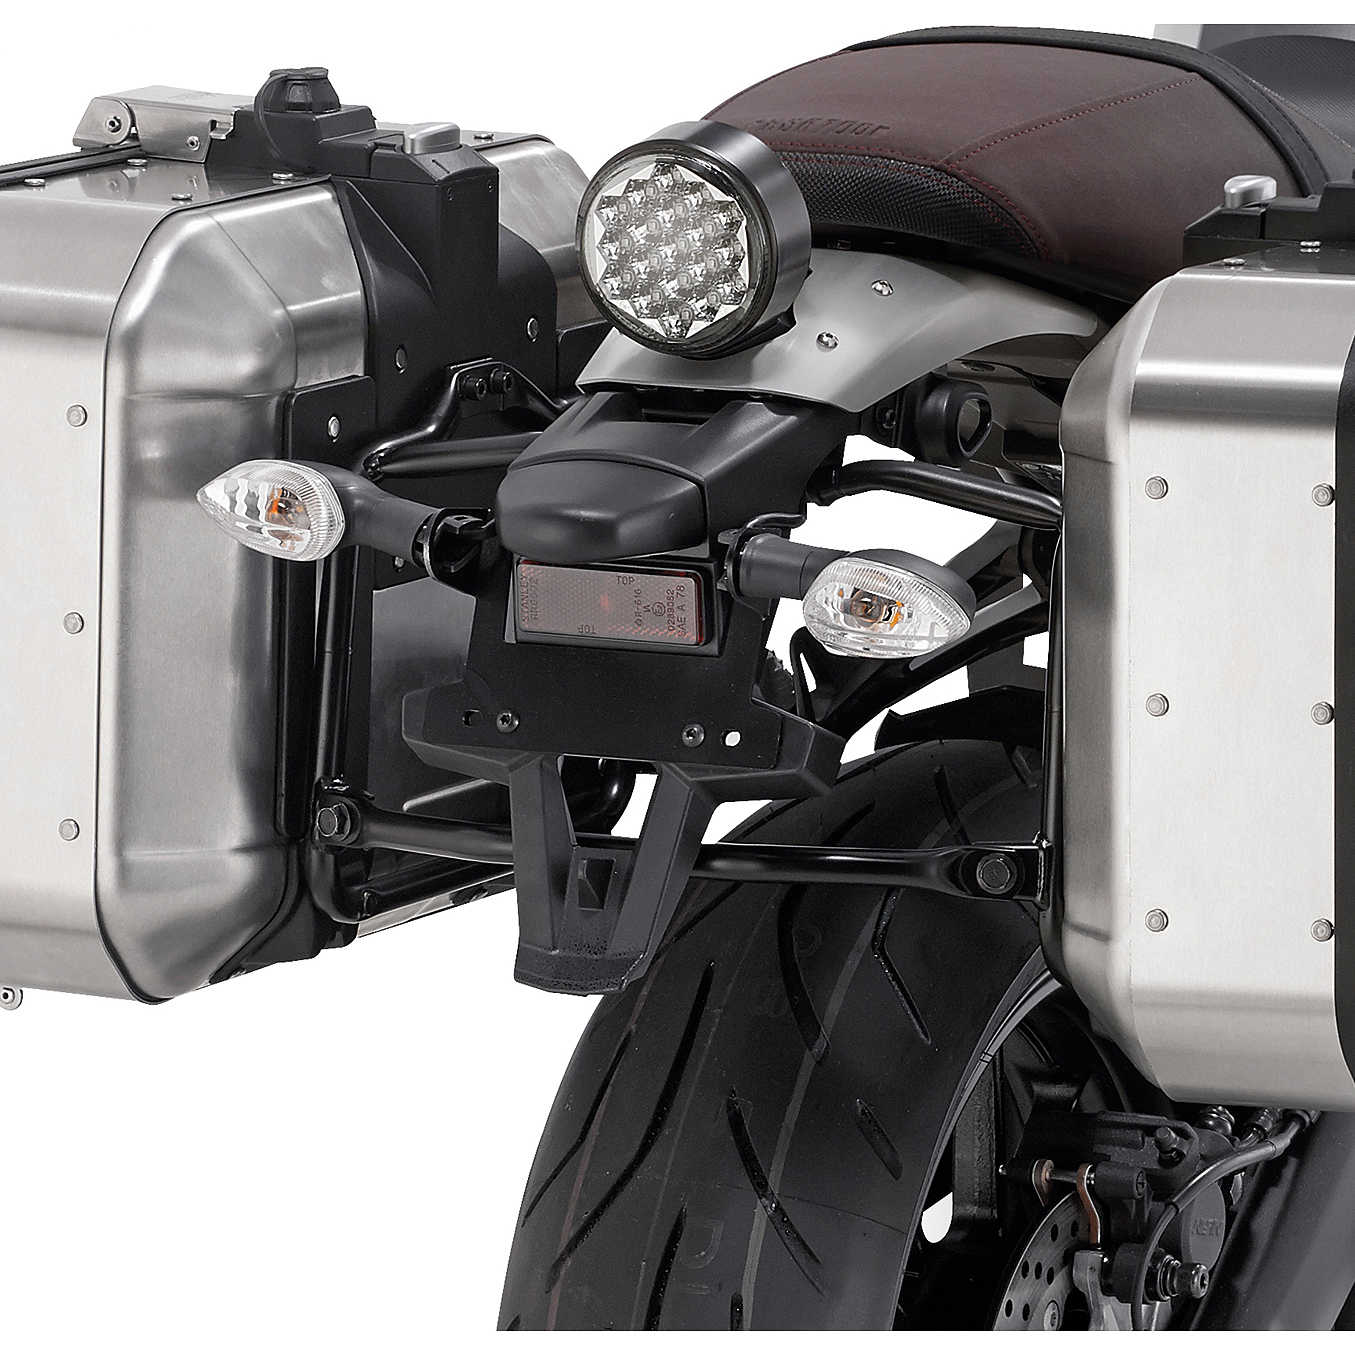 New Yamaha Xsr900 2016 Side Stand Holder Accessories